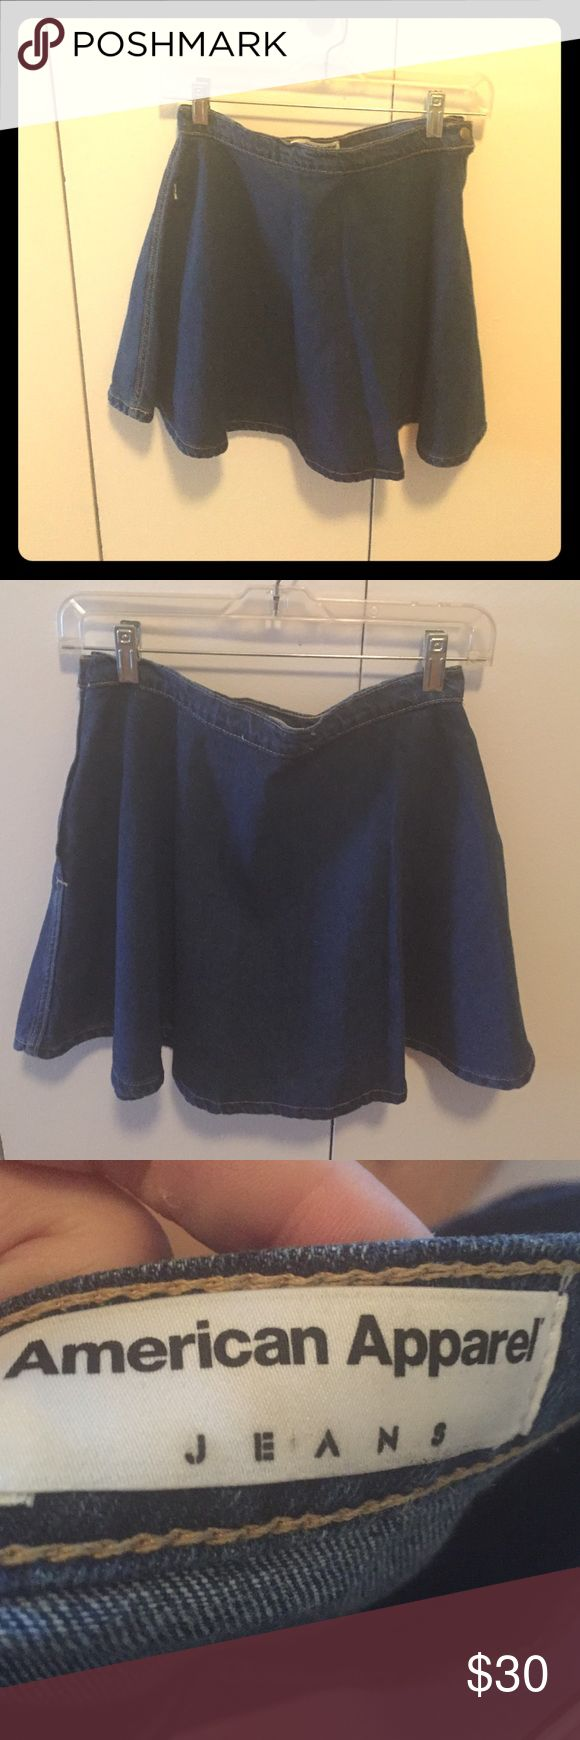 American Apparel high waisted jean skirt American Apparel high waisted jean skirt with flair at bottom. Side zipper and snap. Adorable for summer! American Apparel Skirts